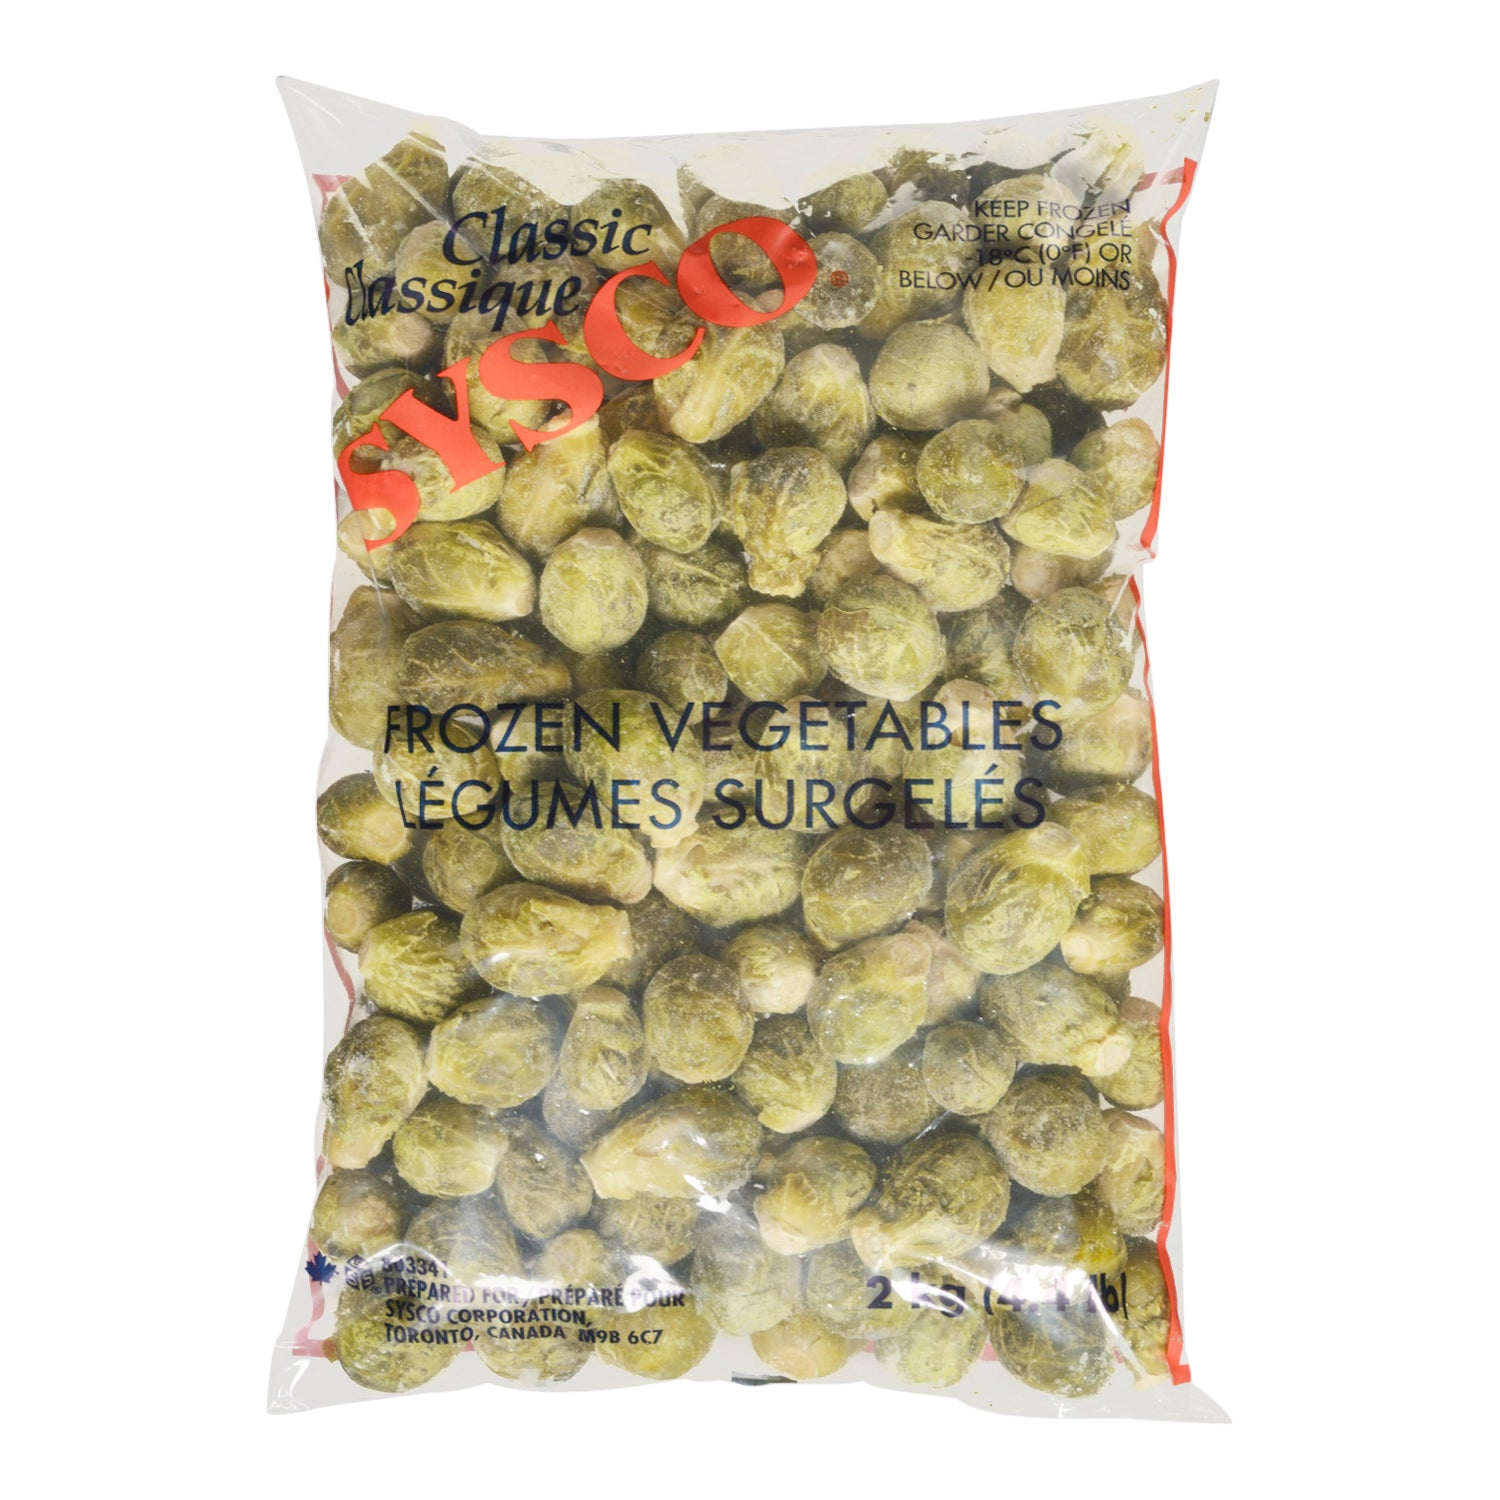 Sysco Classic Frozen Brussel Sprouts 2 kg - 6 Pack [$4.00/kg]